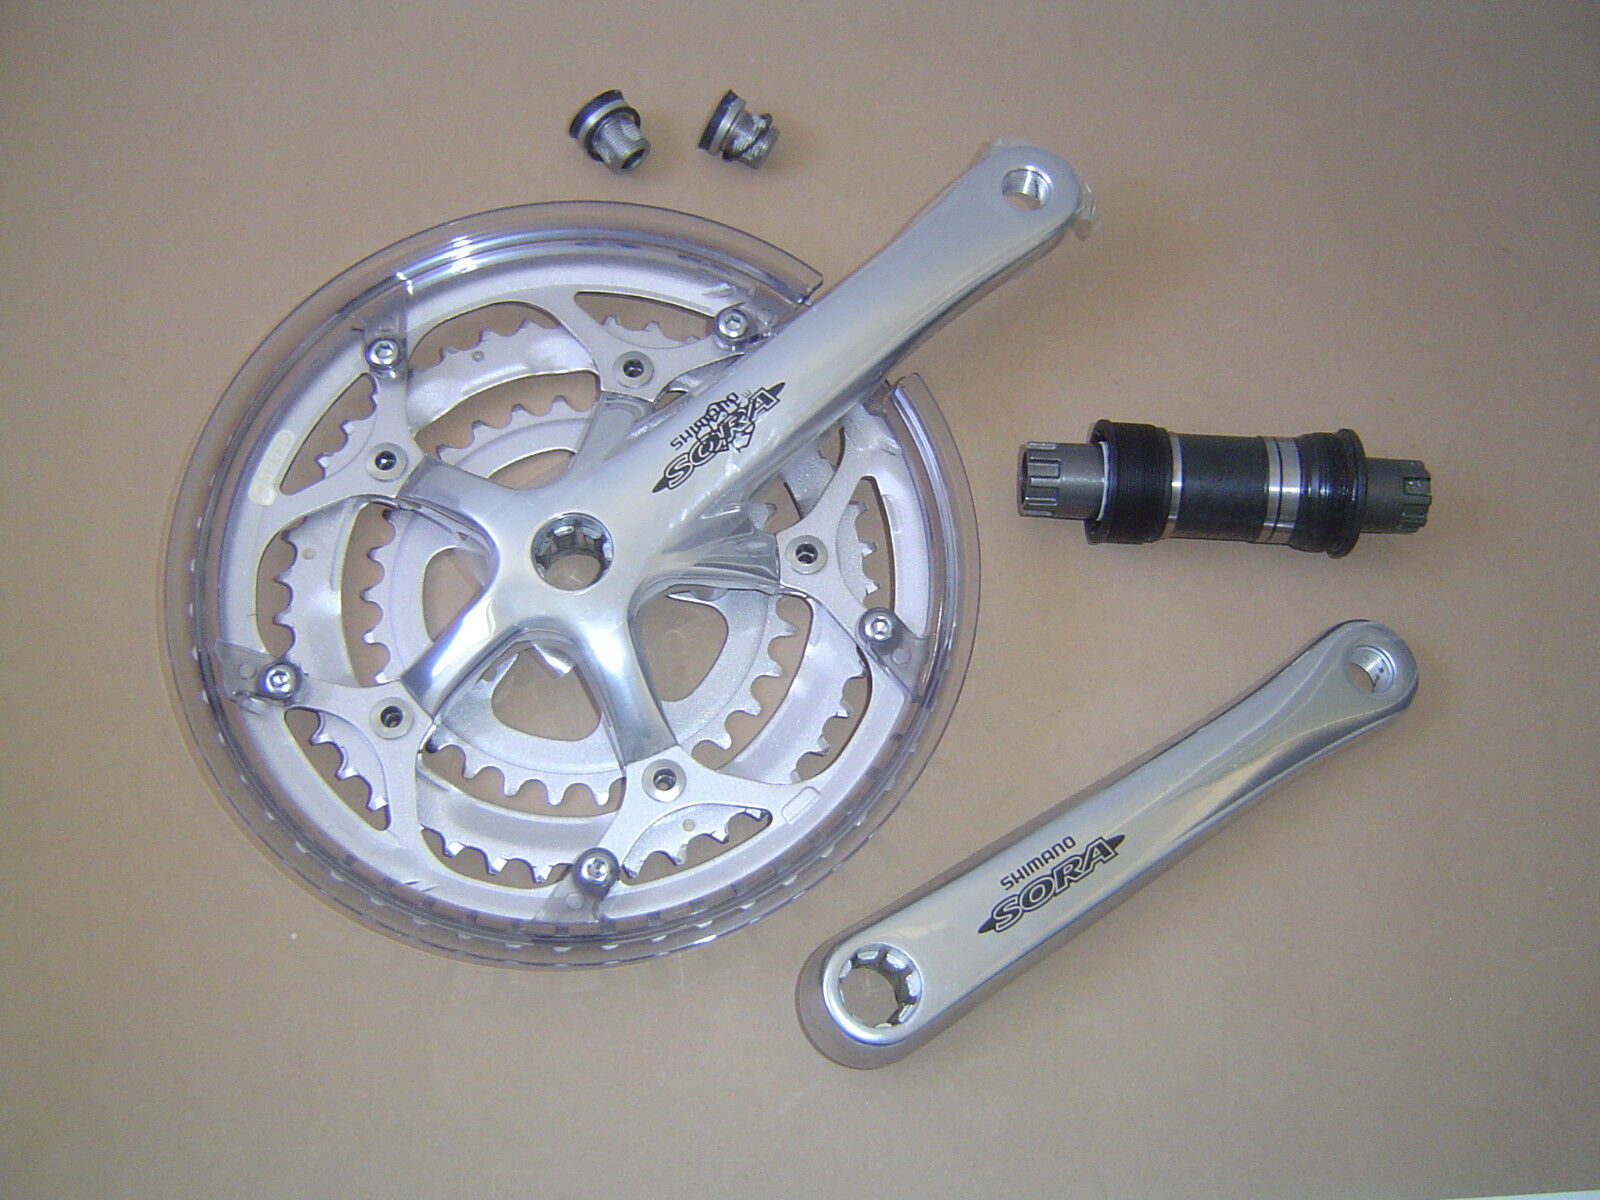 Shimano SORA Crank Fc - 3304 3 x 7 8 x 52 42 30 with Chain Protection incl. Warehouse